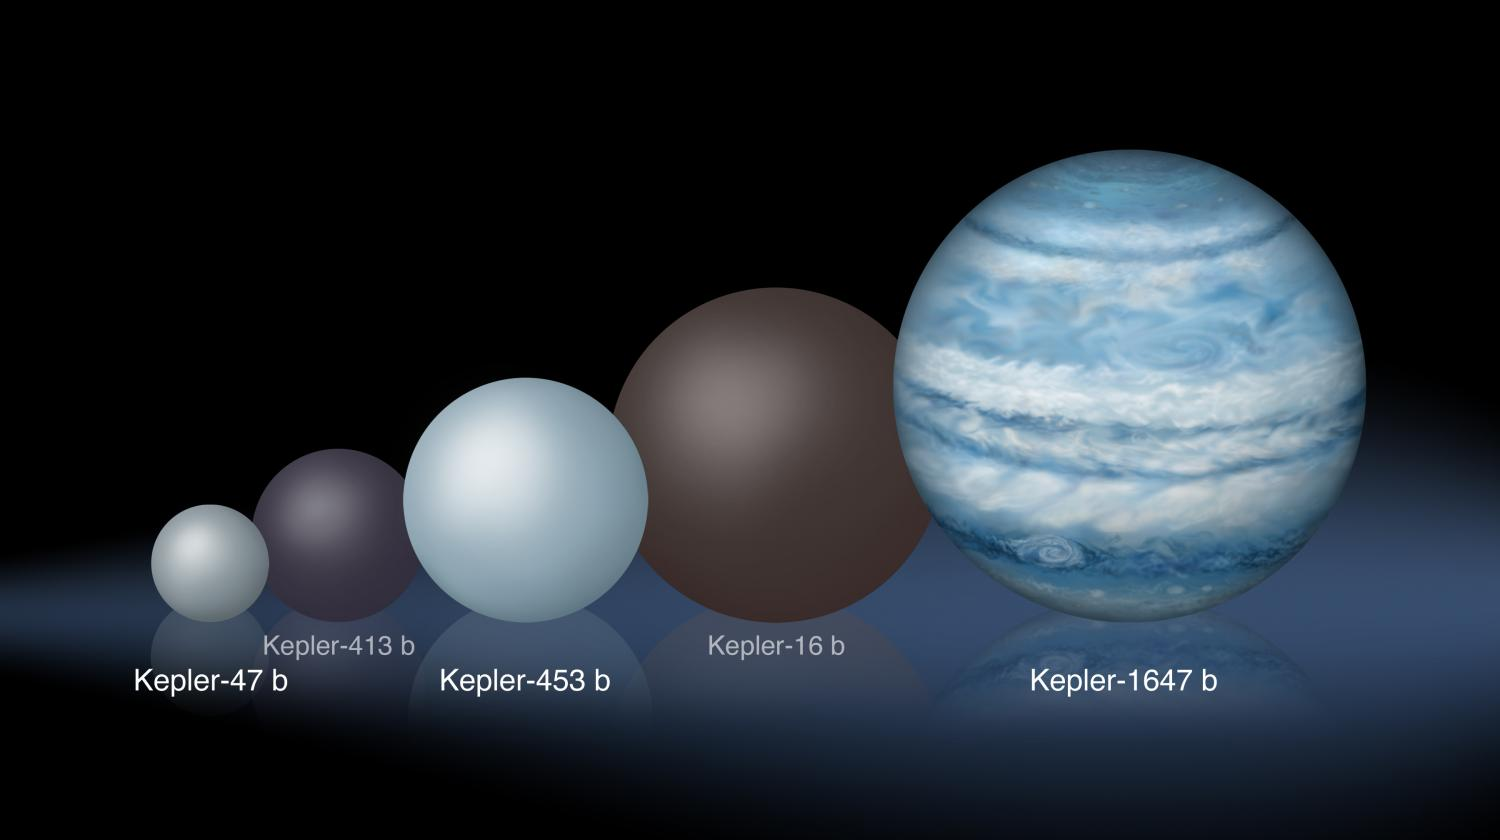 kepler a planet behind neptune - photo #25